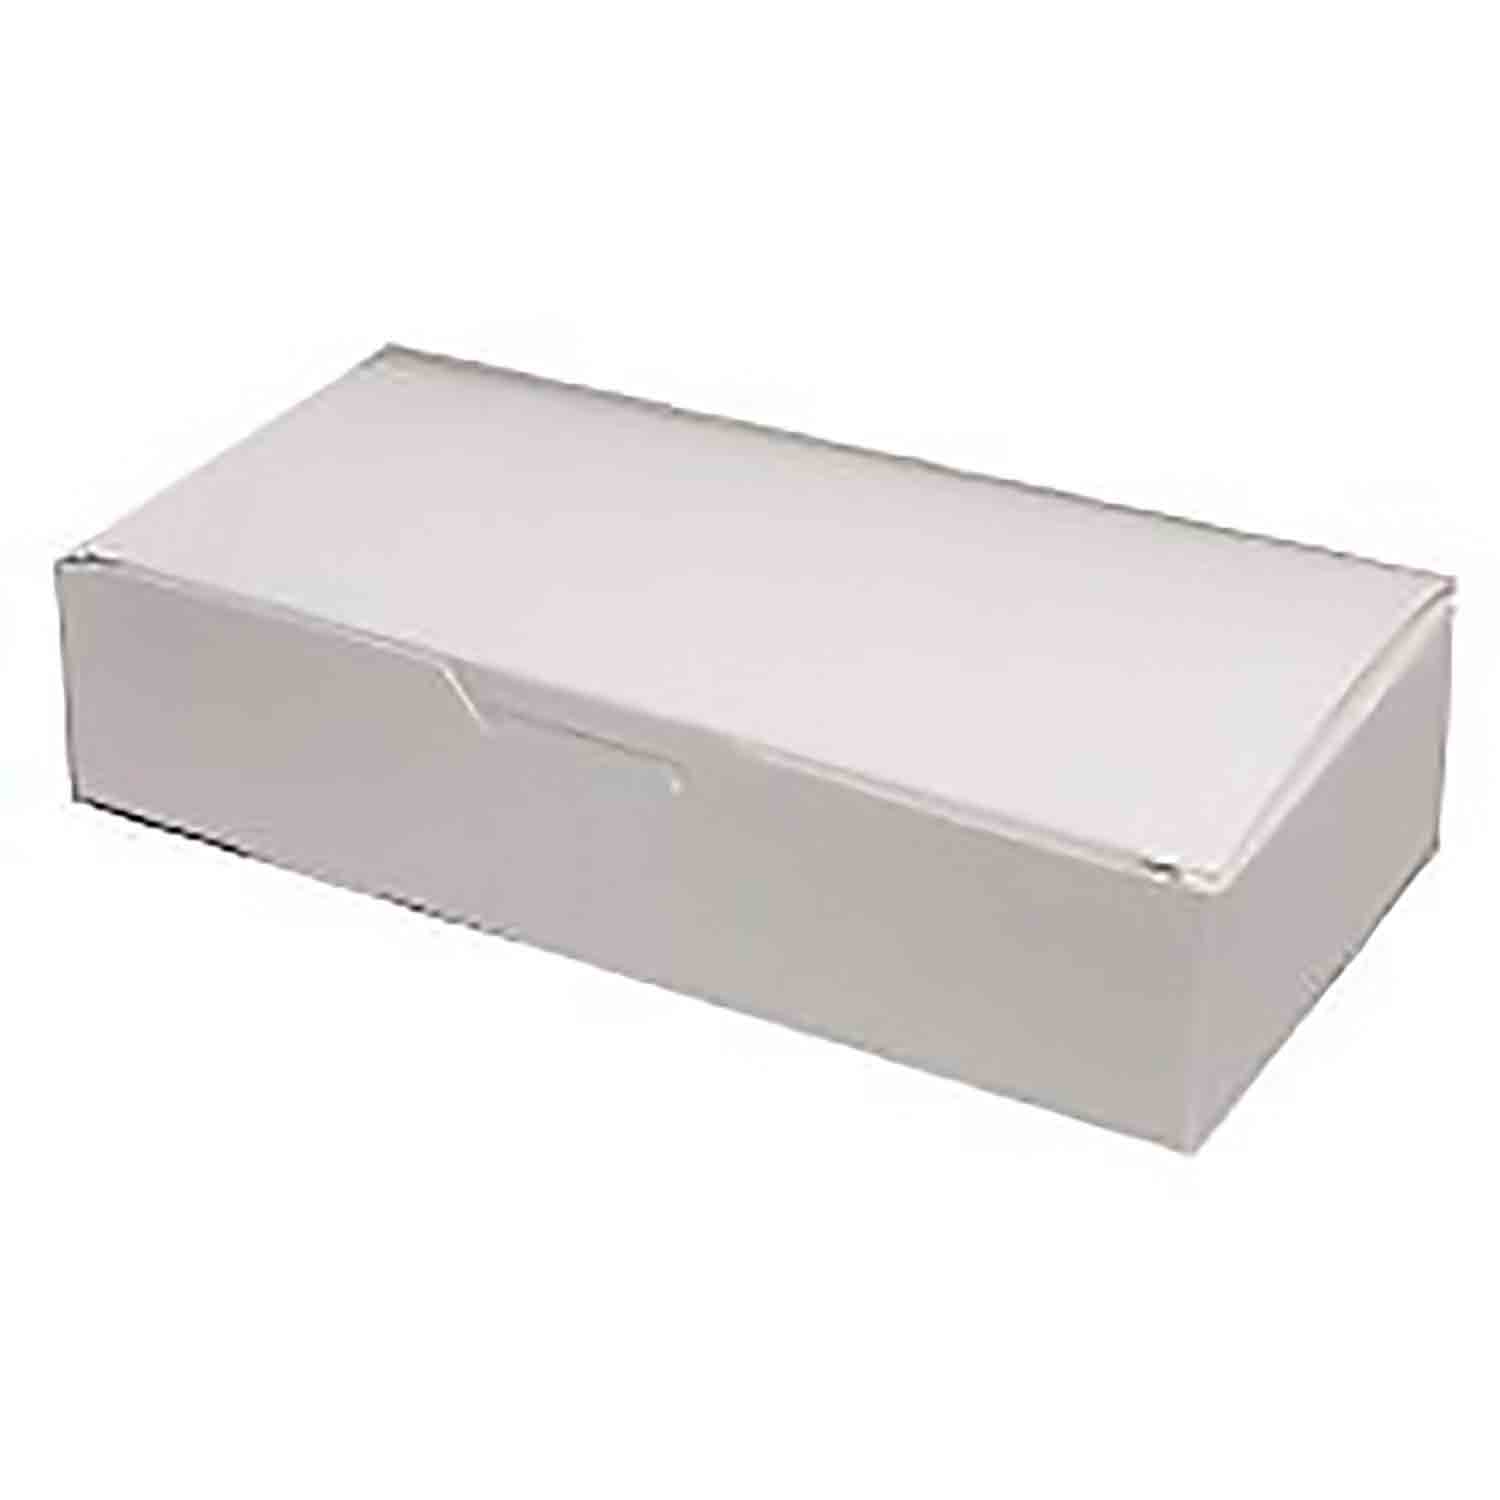 3 lb. White Candy Box